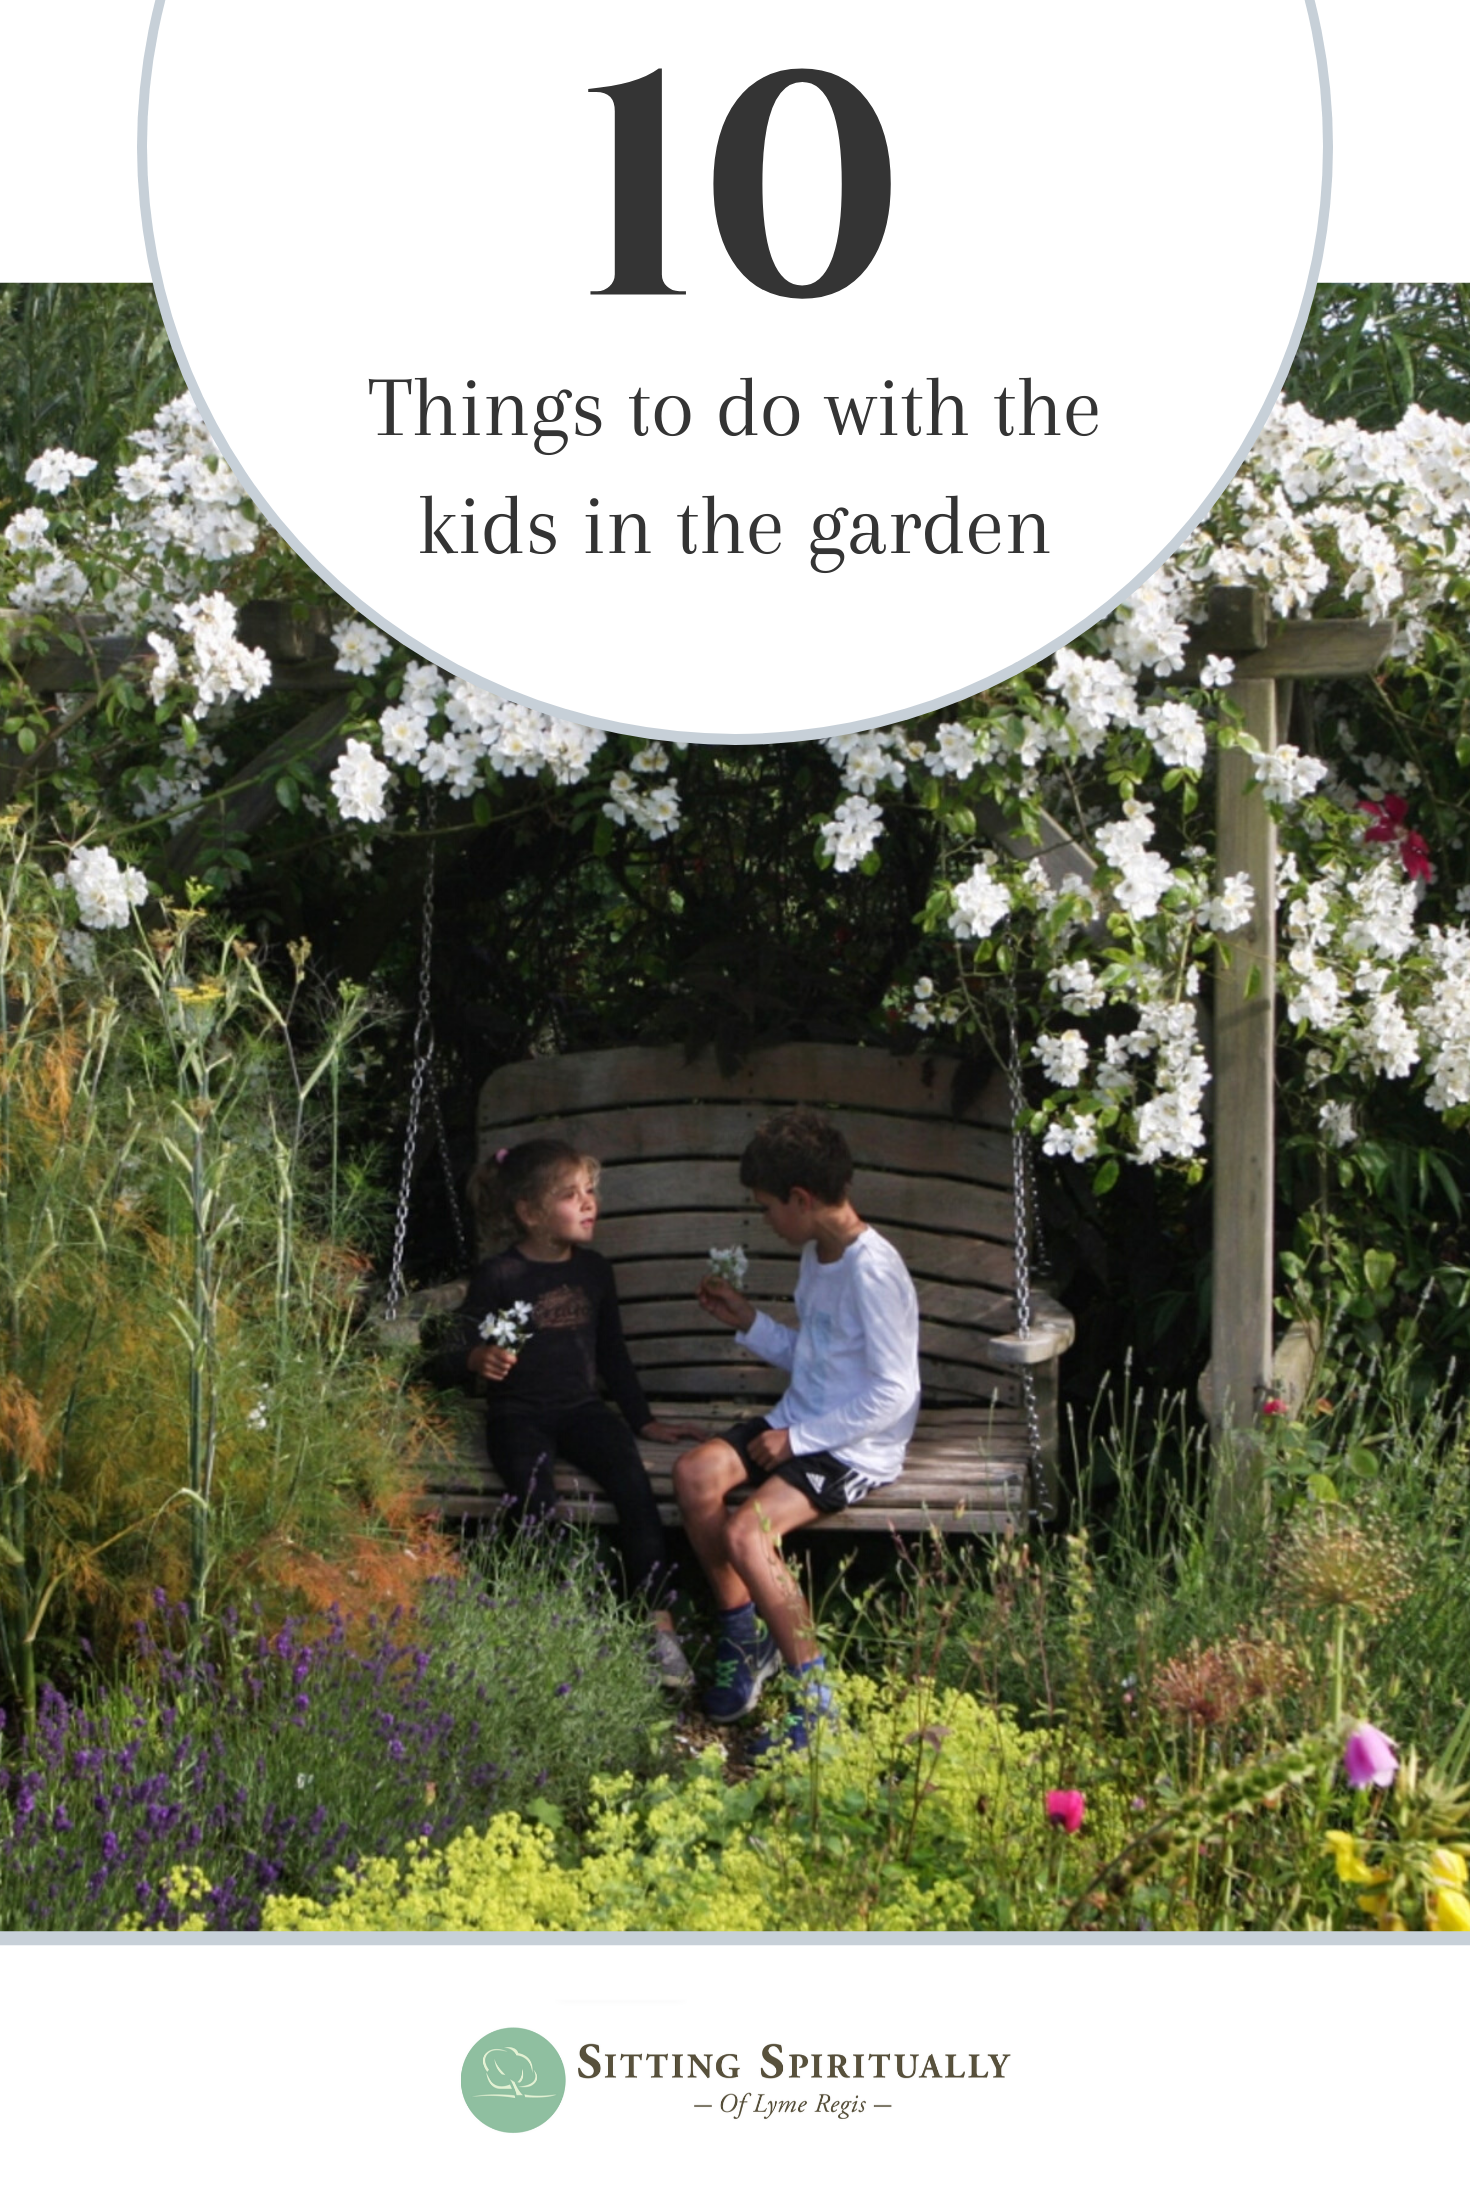 The sun is out, It's a glorious day and for many of us, the first day of home schooling. Getting the kids outside and playing in the fresh air is more important now than it has even been before so we thought we'd help with a list of our top ten fabulous things to do with the kids in the garden ☀️  . . . . #homeschooling #kidsathome #garden #gardenwithkids #kidsgarden #gardenideas #gardengames #gardenplay #gardentips #gardenblog #beautifulday #gorgeousday #lovelyweather #springhassprung #summer